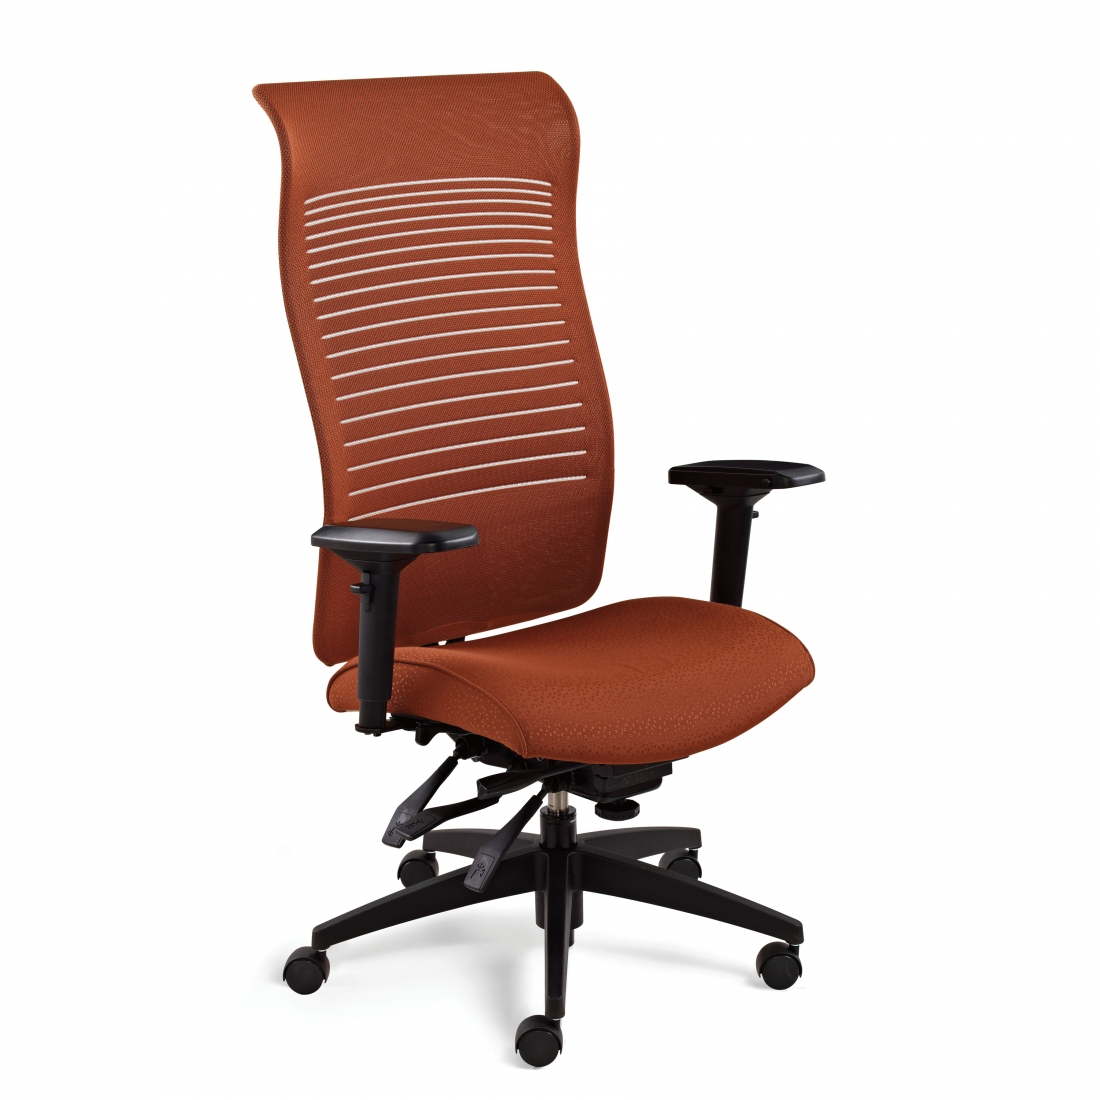 ergonomic chair data shower target buy rite business furnishings office furniture vancouver